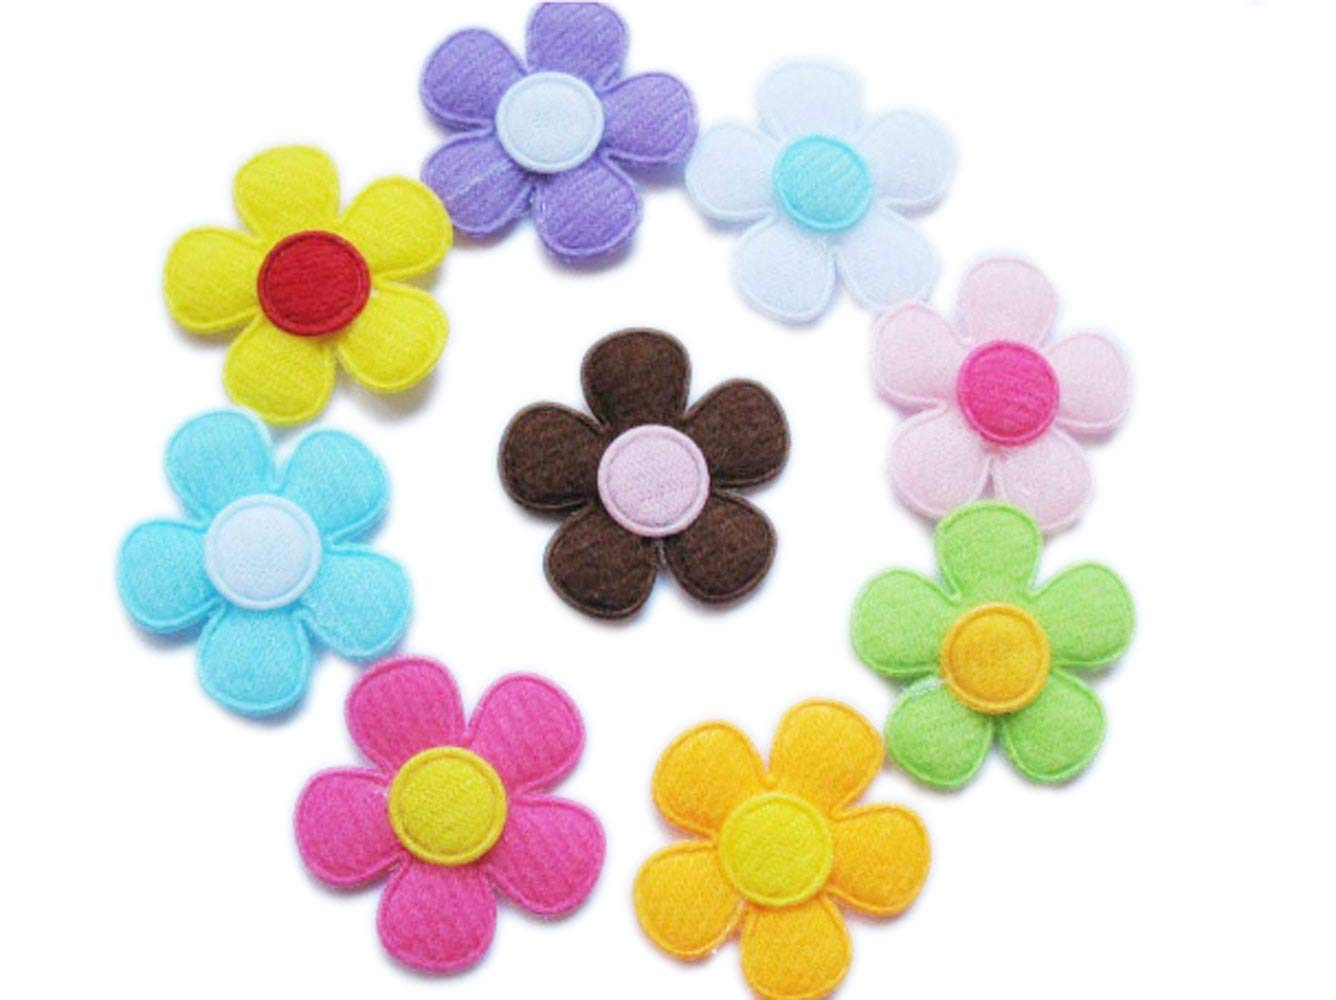 YYCRAFT Pack Of 90pcs Padded Spring Felt Flower Appliques 9 Colors